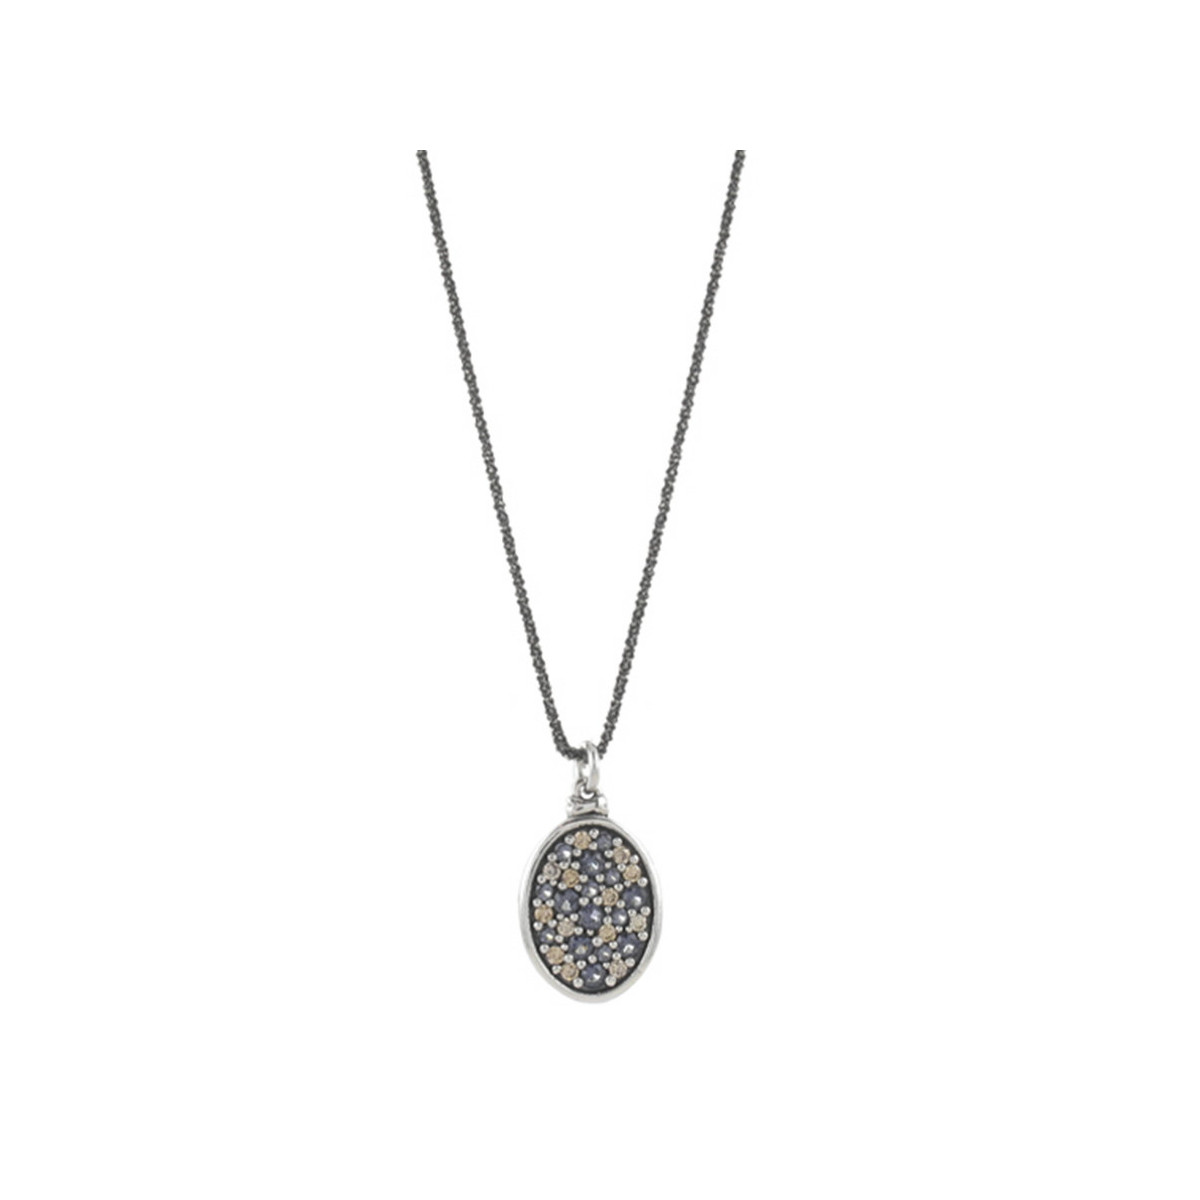 SILVER NECKLACE AND NATURAL STONES